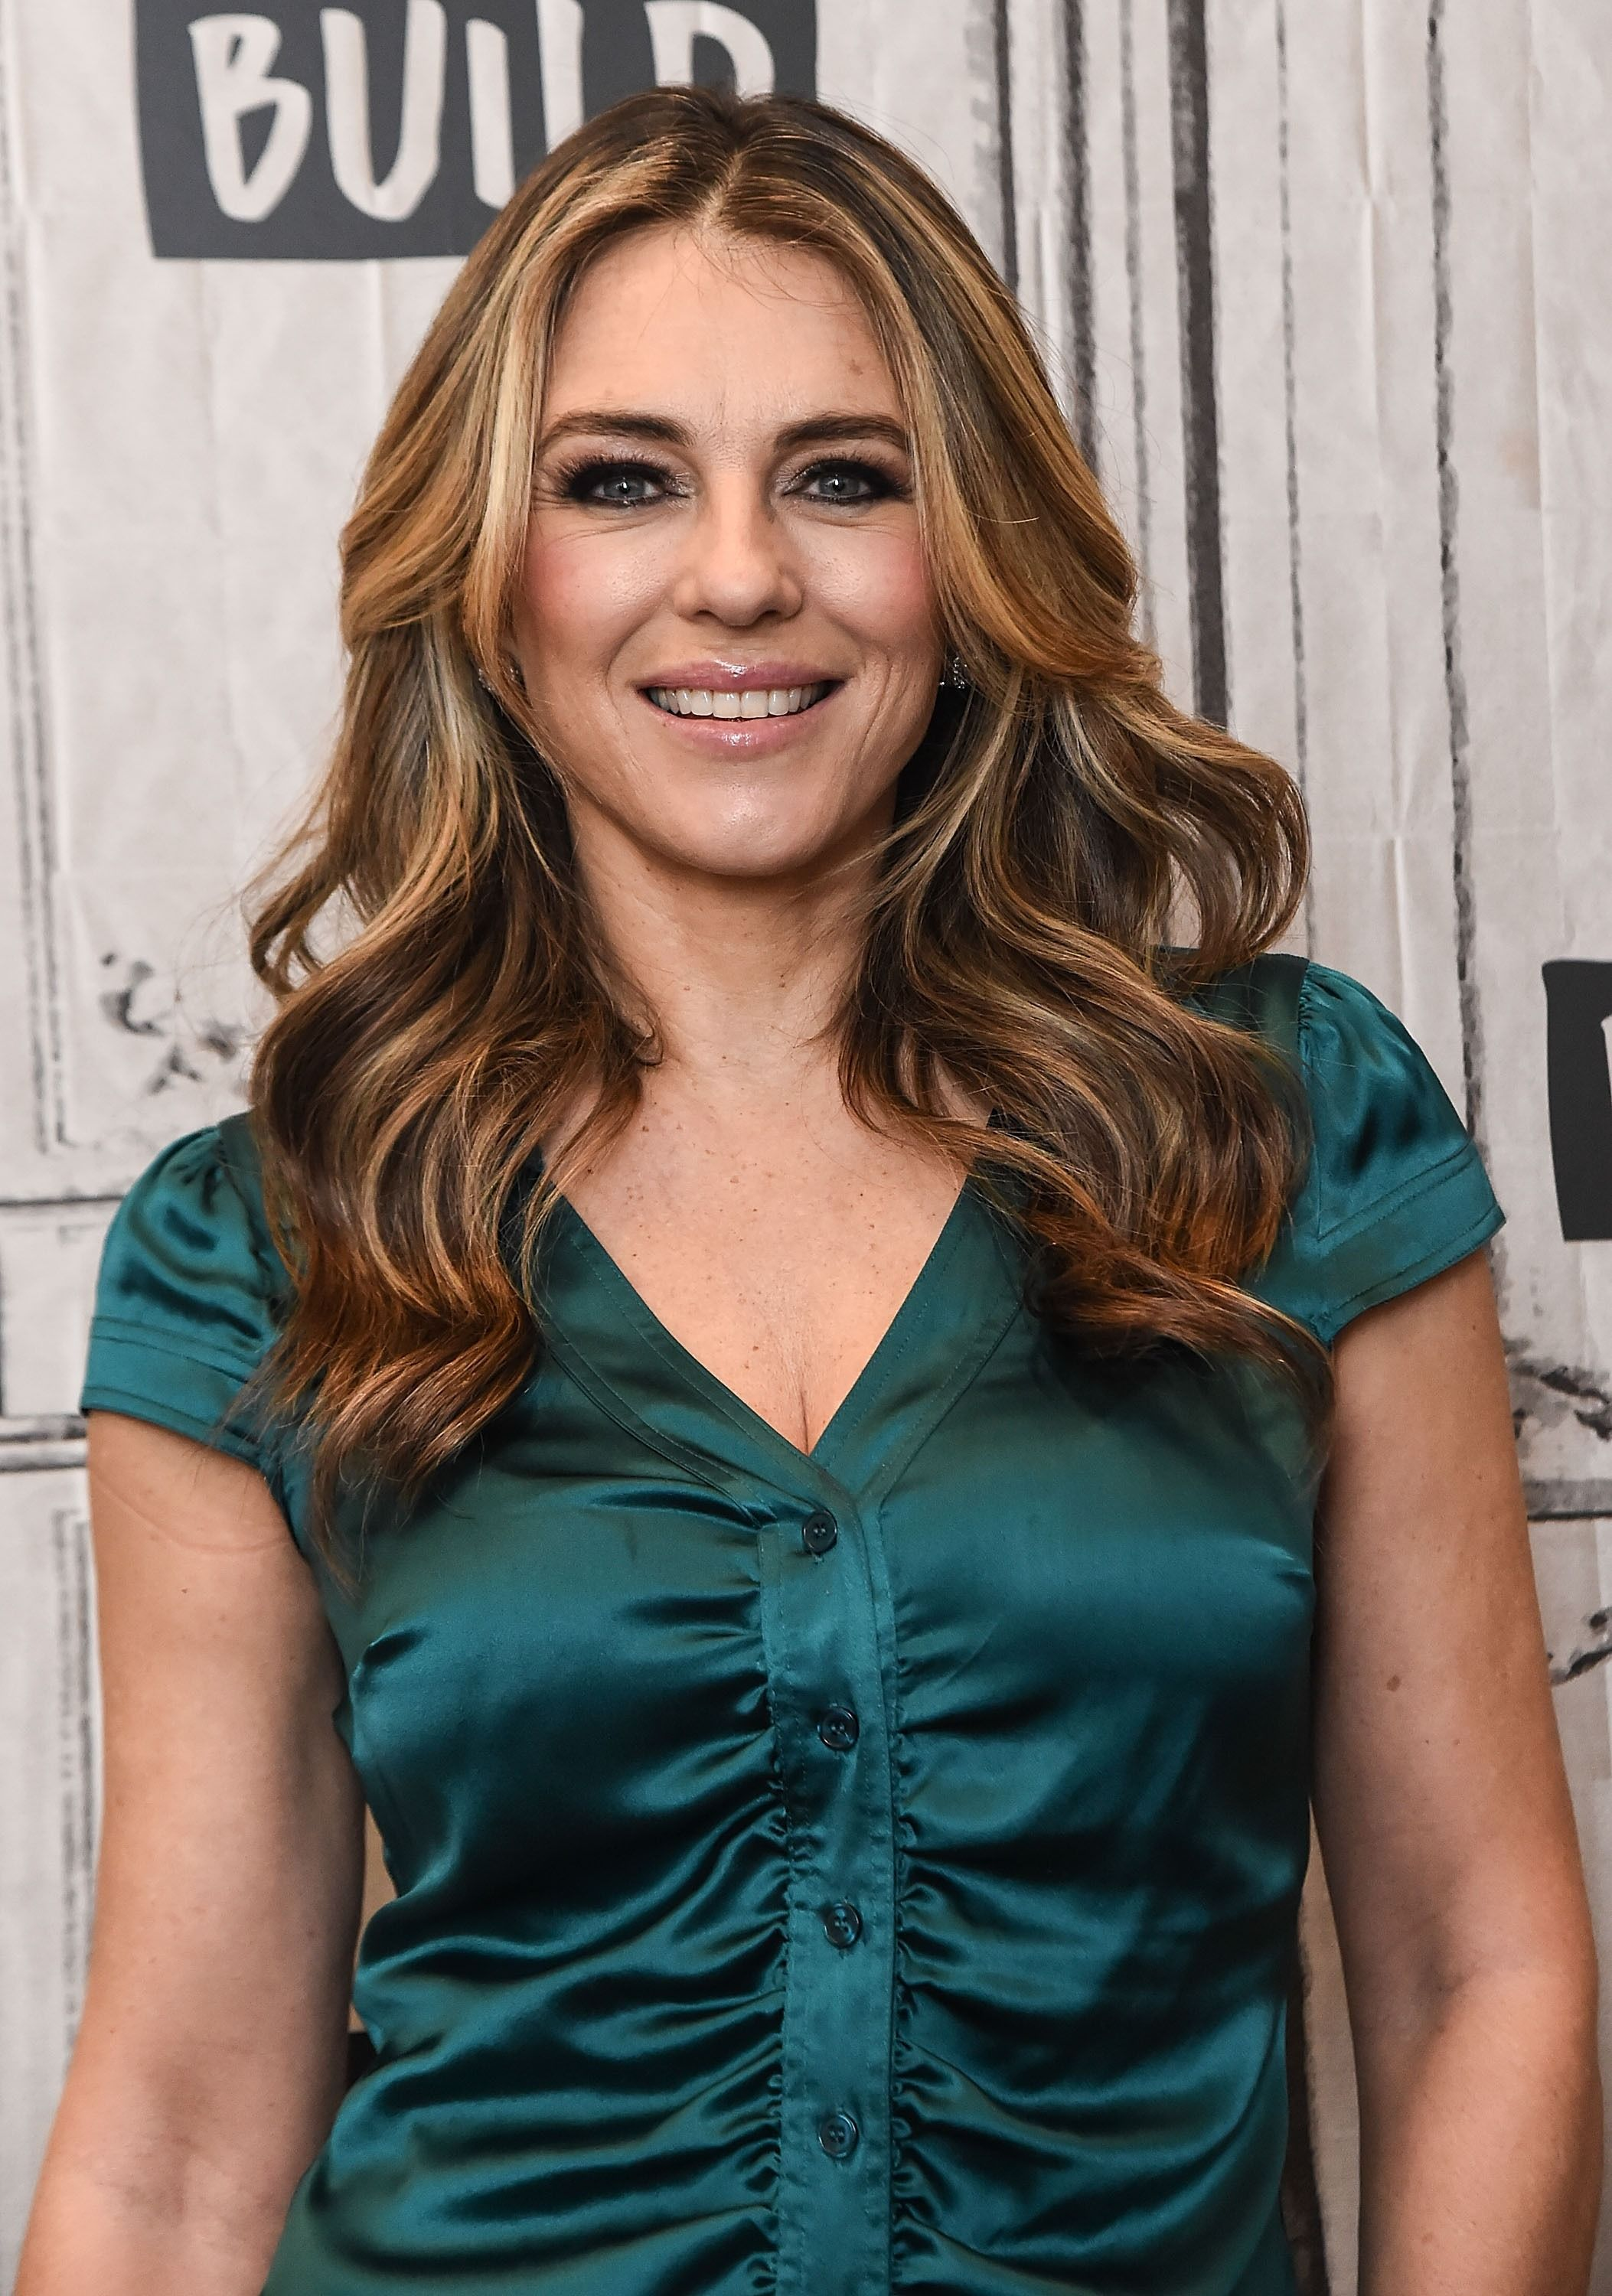 Elizabeth Hurley at the Build Studio to discuss 'The Royals.' Source | Photo: Getty Images